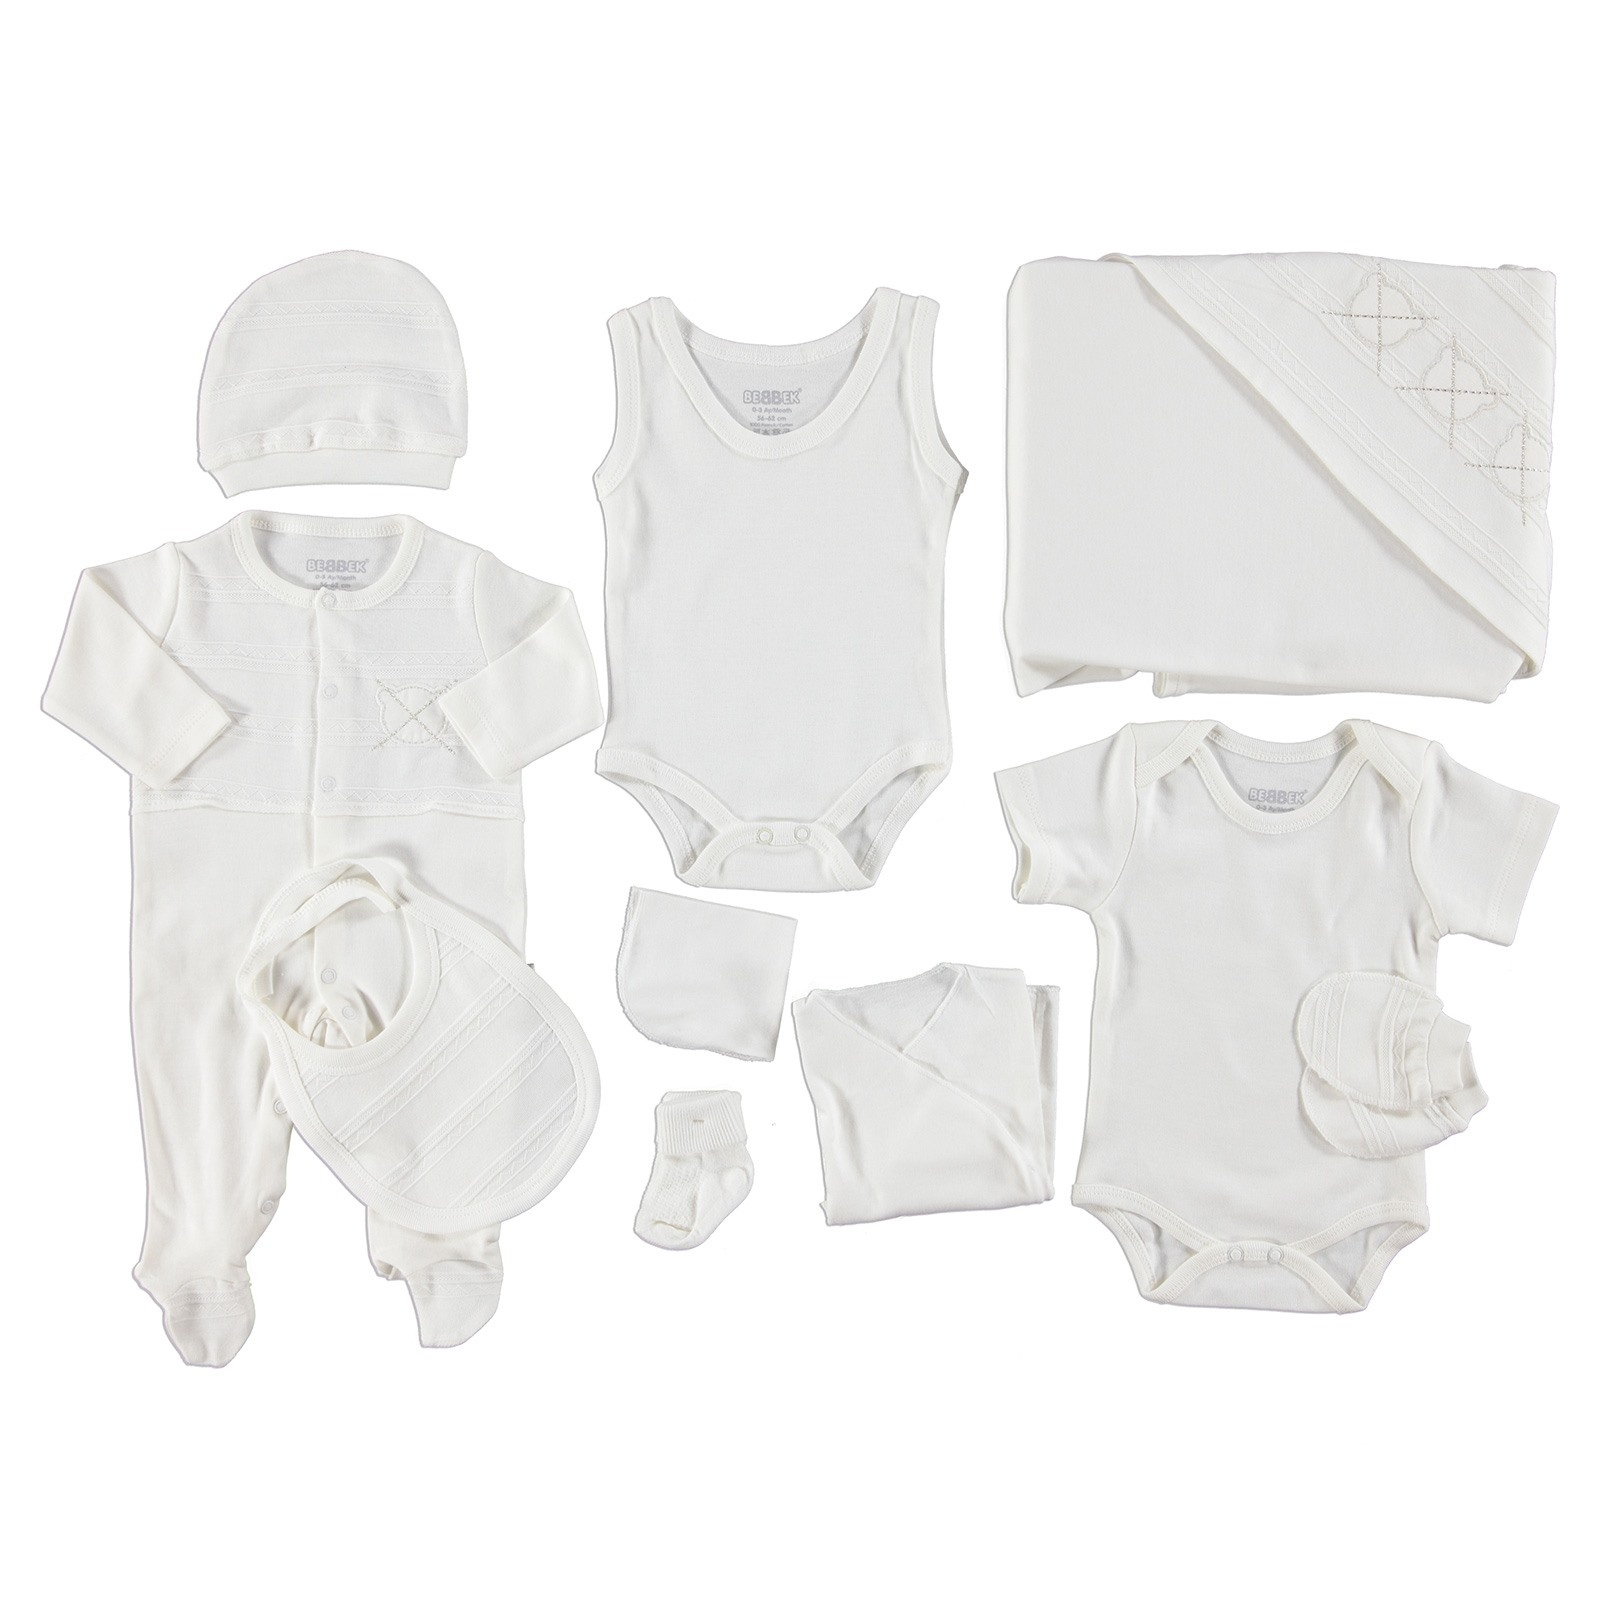 Ebebek Bebbek Bear Boy Newborn Baby Hospital Pack 10 Pcs